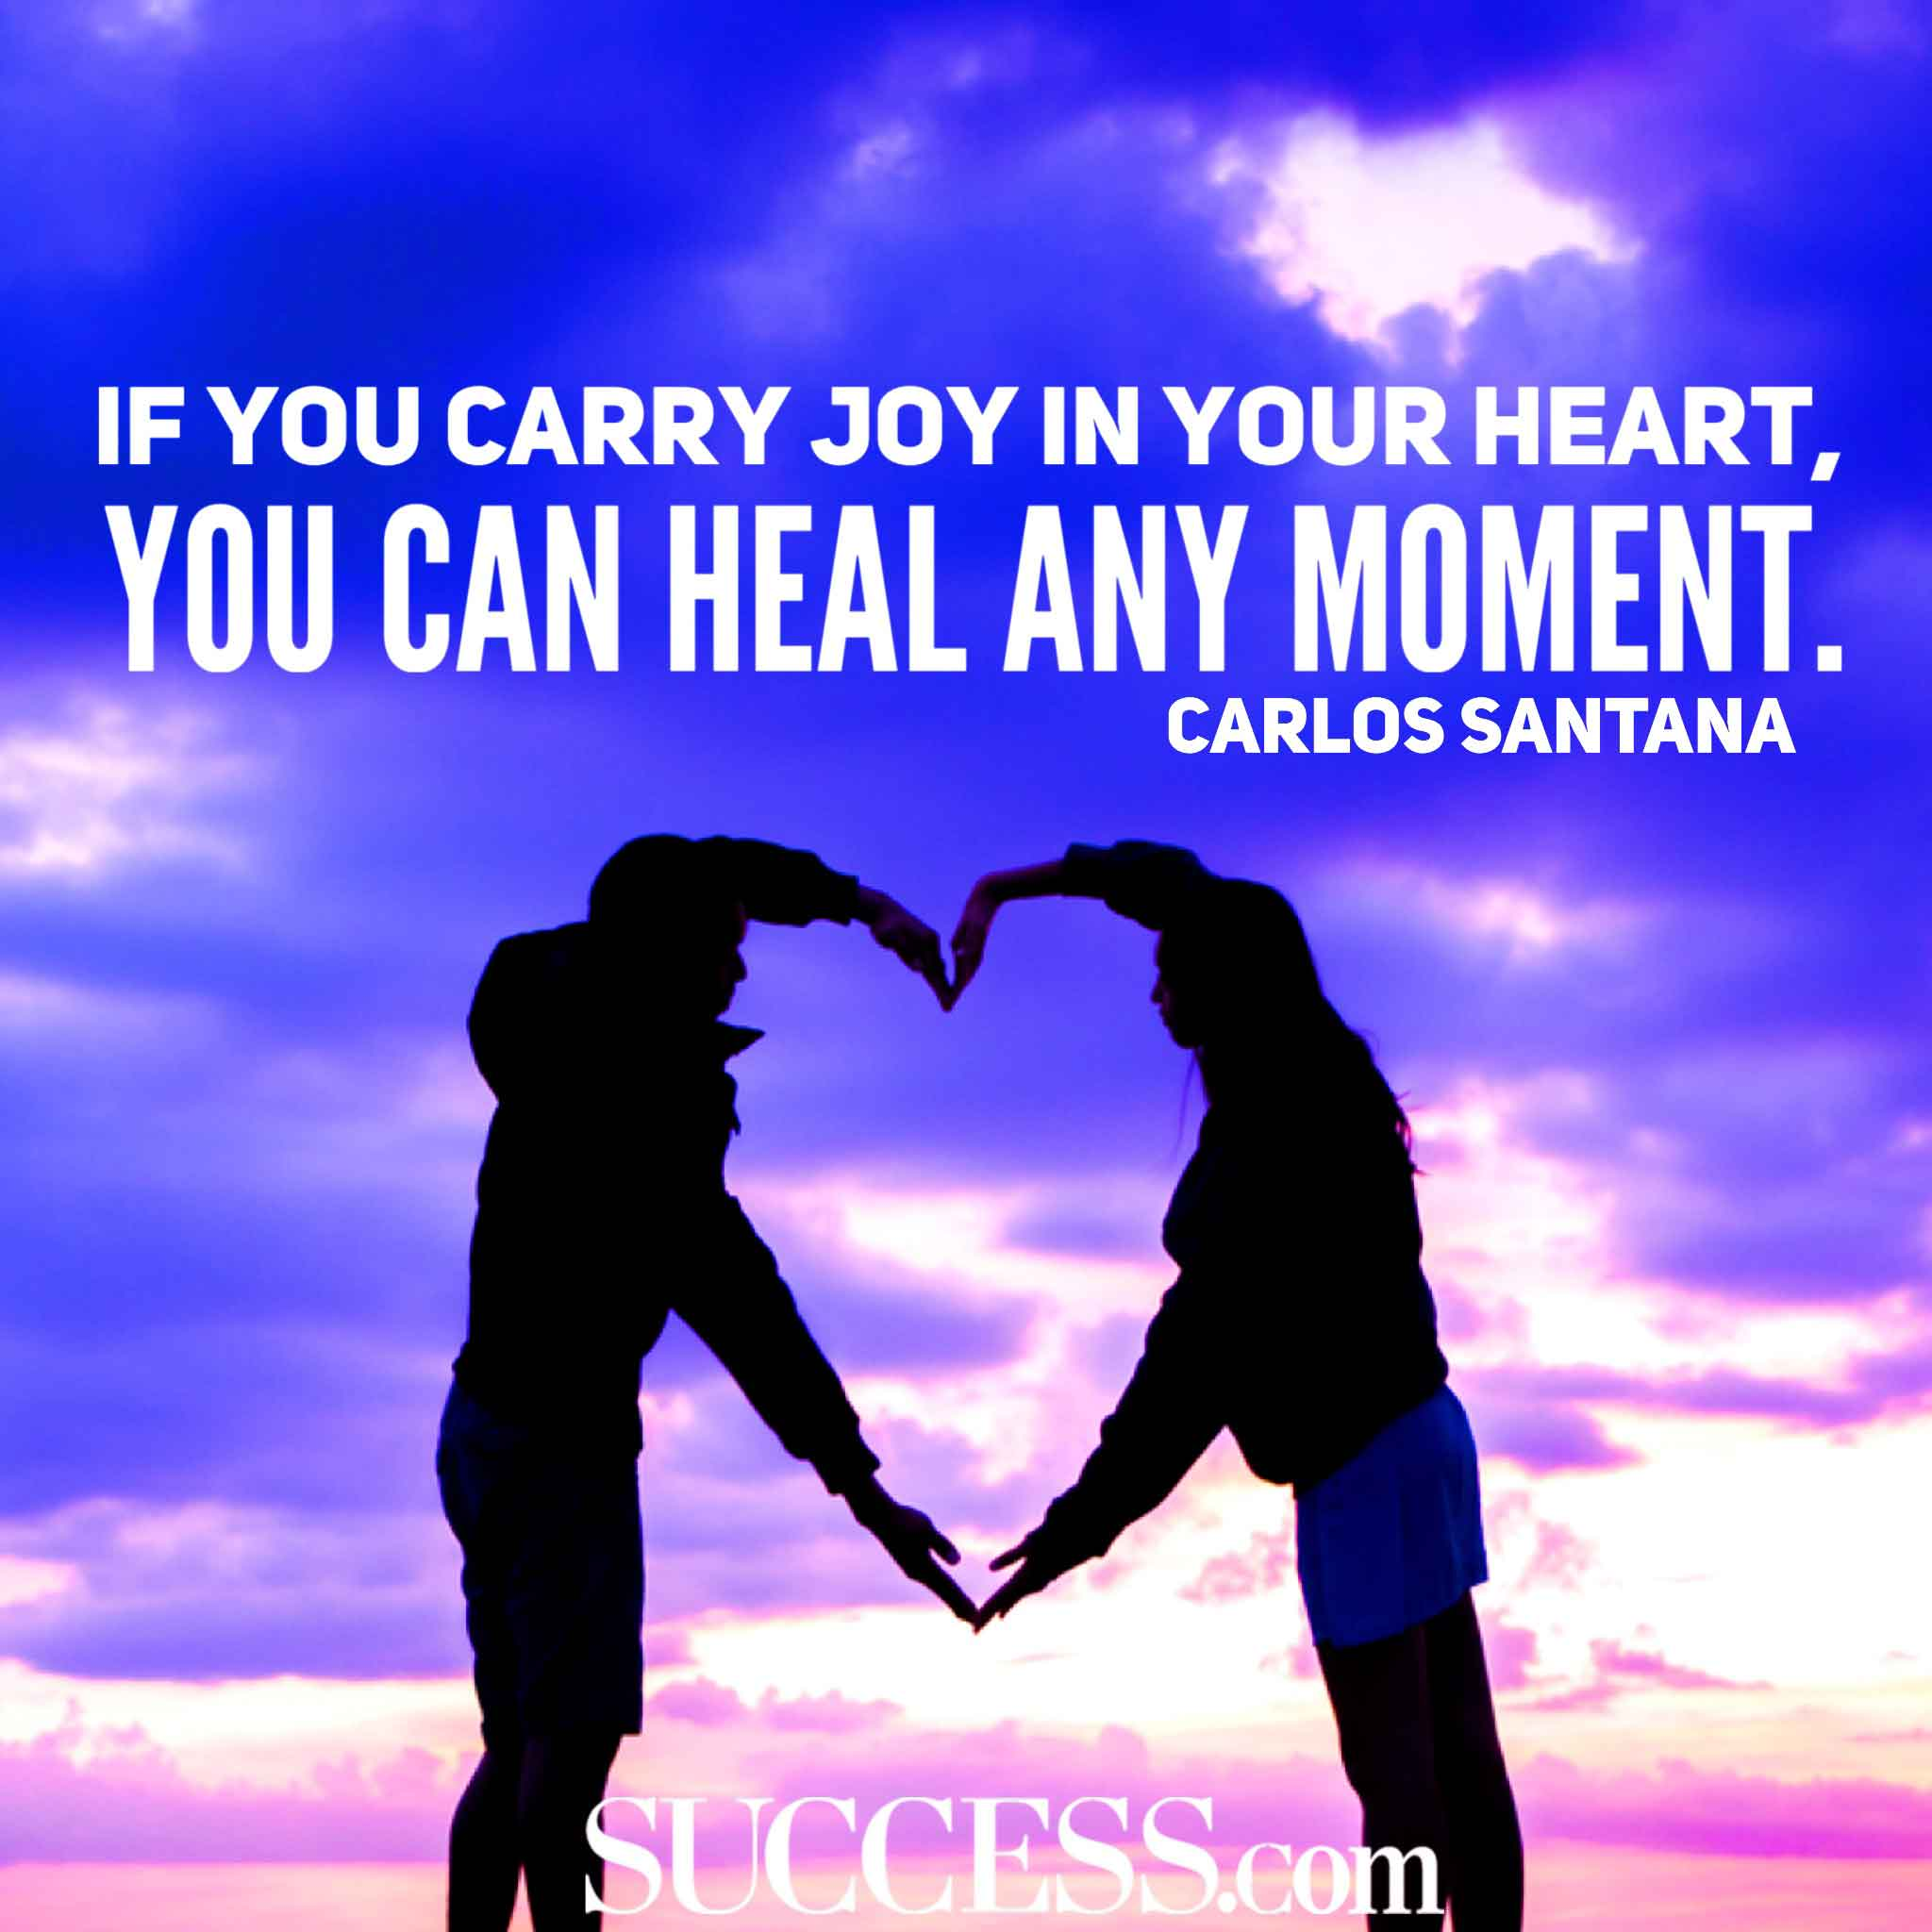 Joy Quotes 15 Inspiring Quotes to Help You Find Joy Joy Quotes